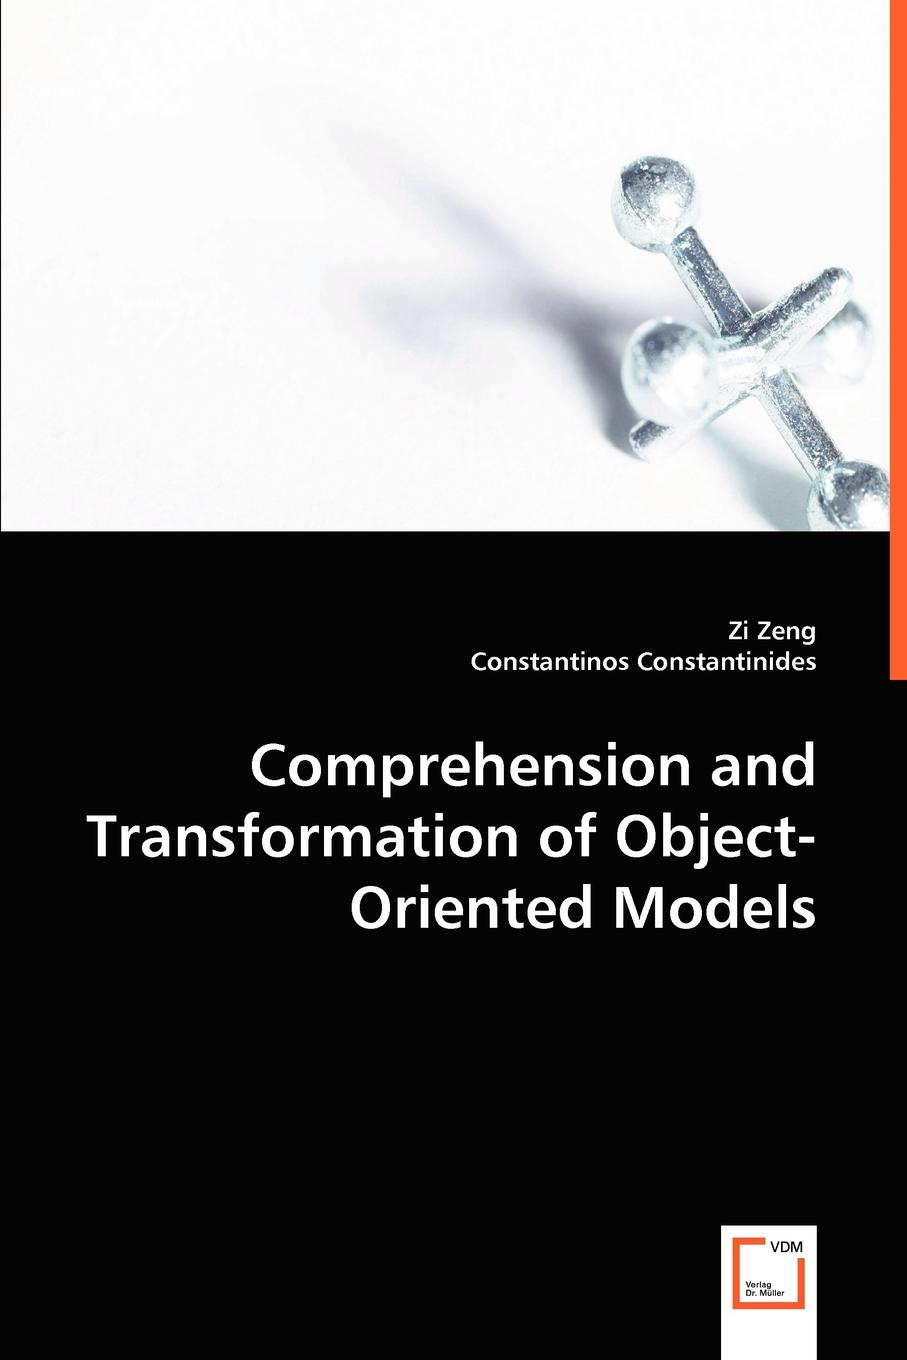 Zi Zeng, Constantinos Constantinides Comprehension and Transformation of Object-oriented Models object oriented modeling of virtual labs for control education